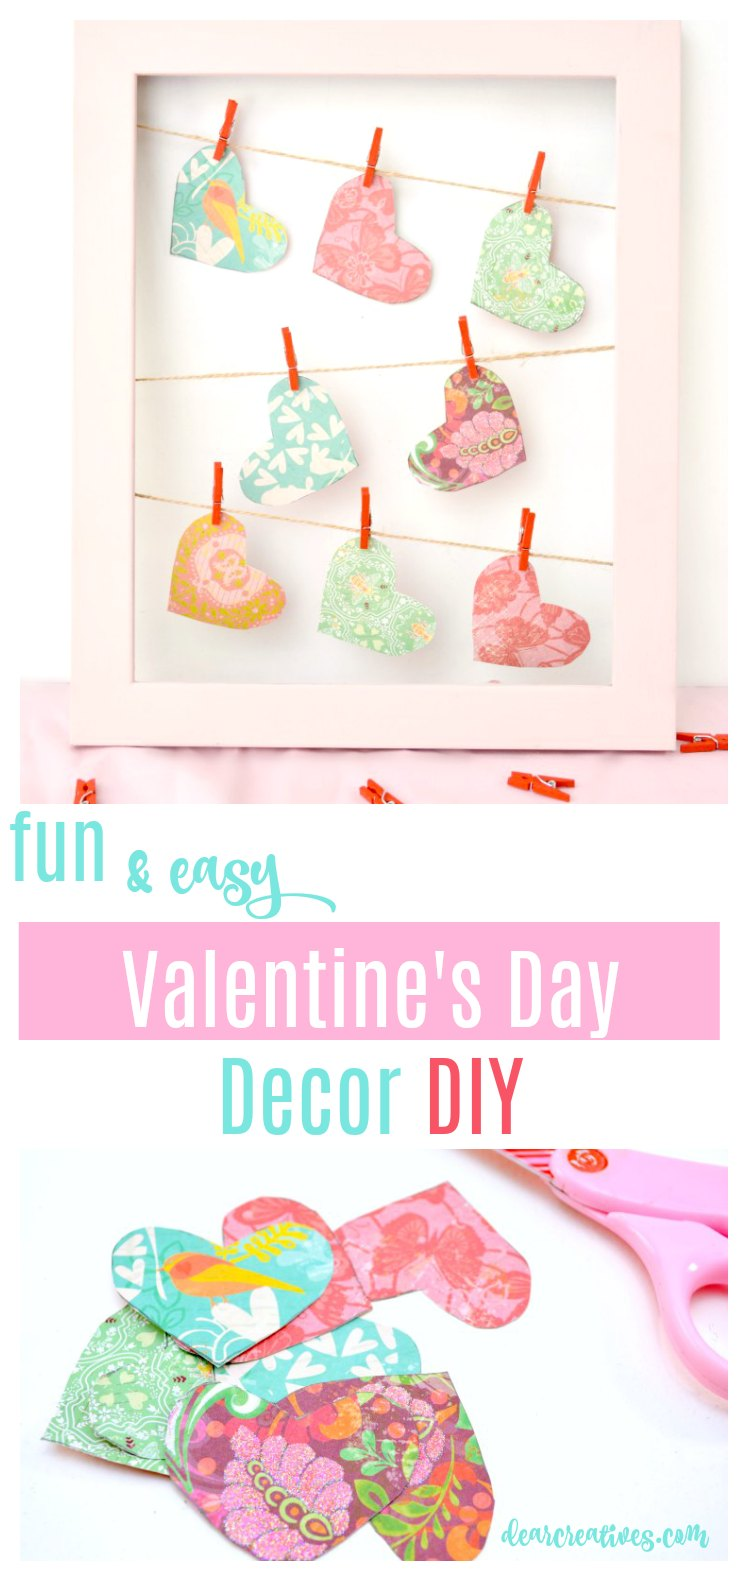 Valentine 39 s day clothesline heart frame decor diy craft for Home decorations for valentine s day